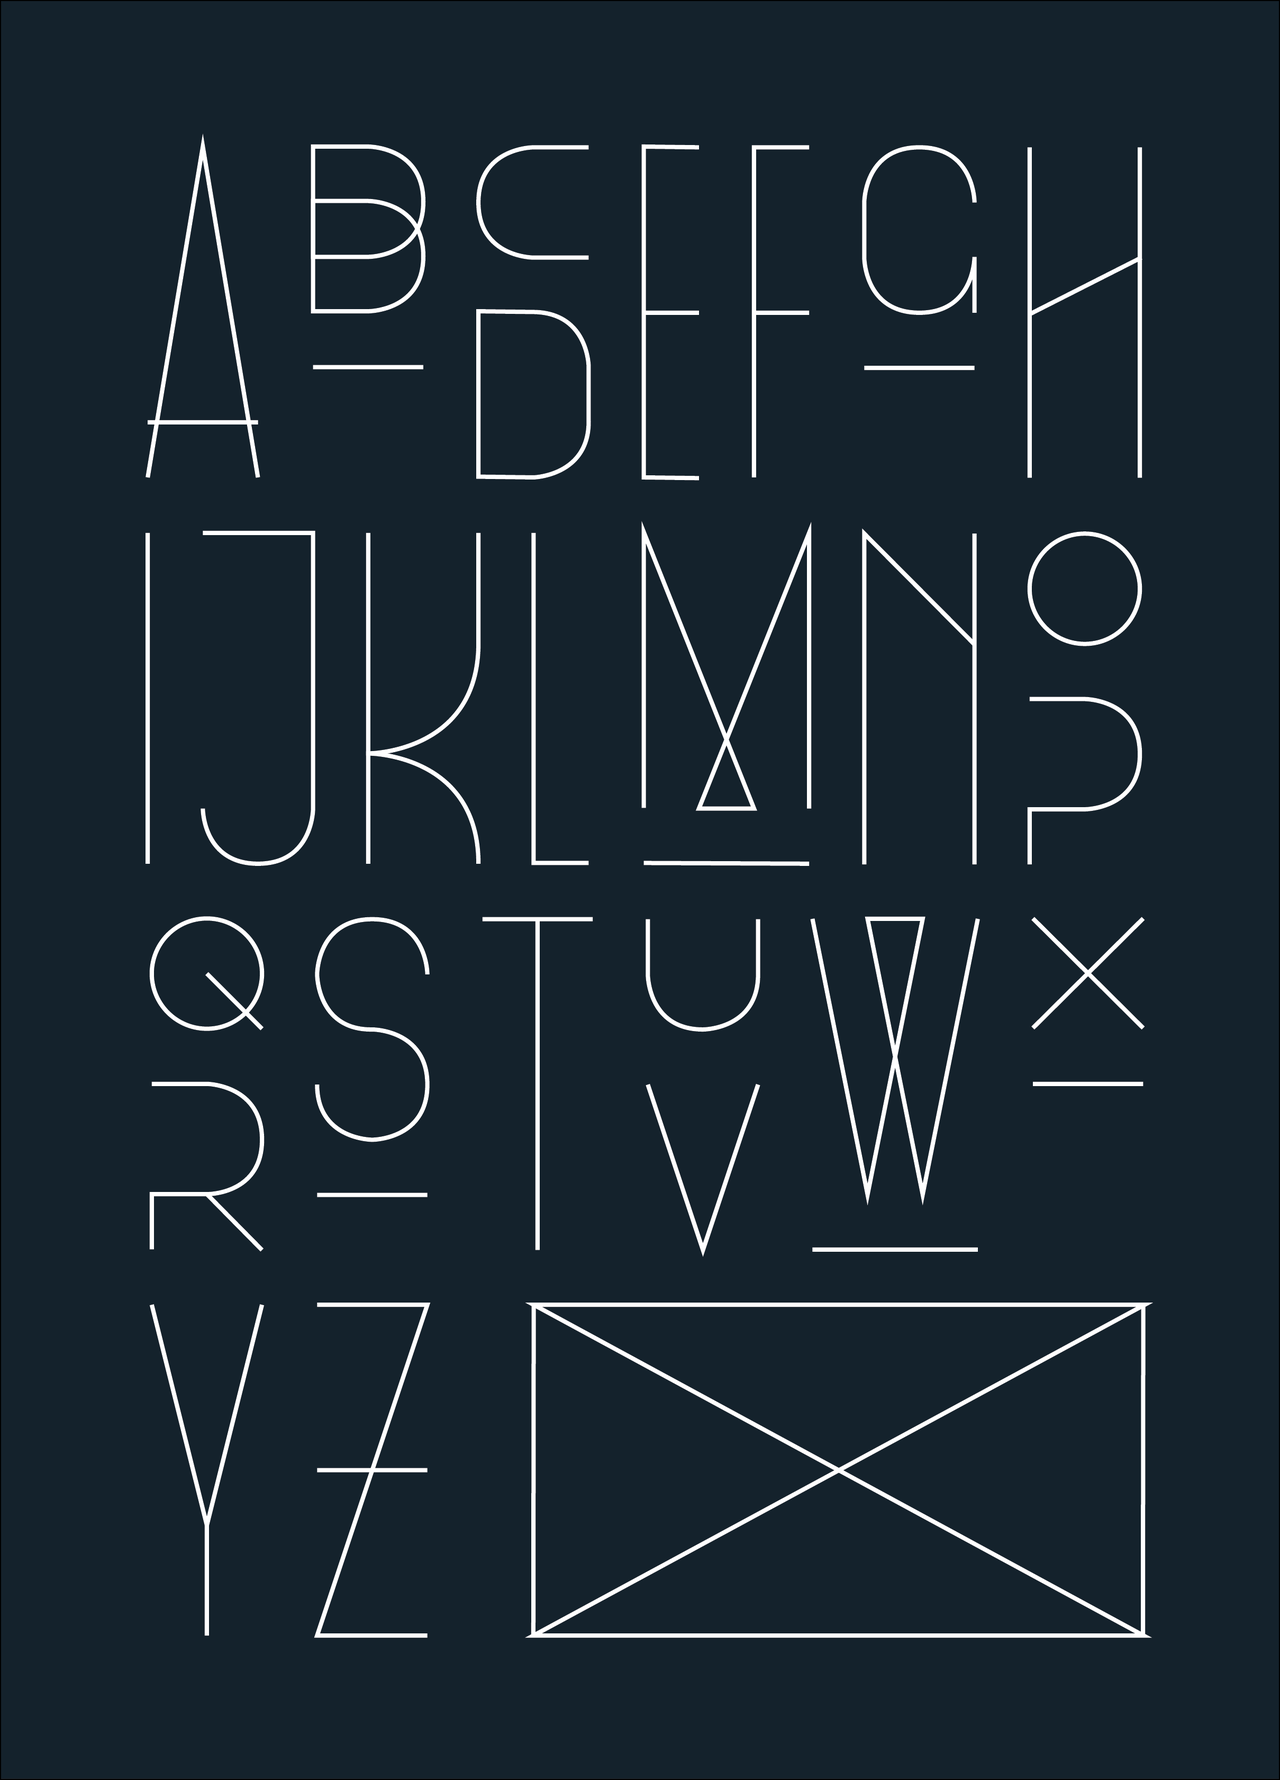 chroniquedesign:  Maleficent  Typeface Design